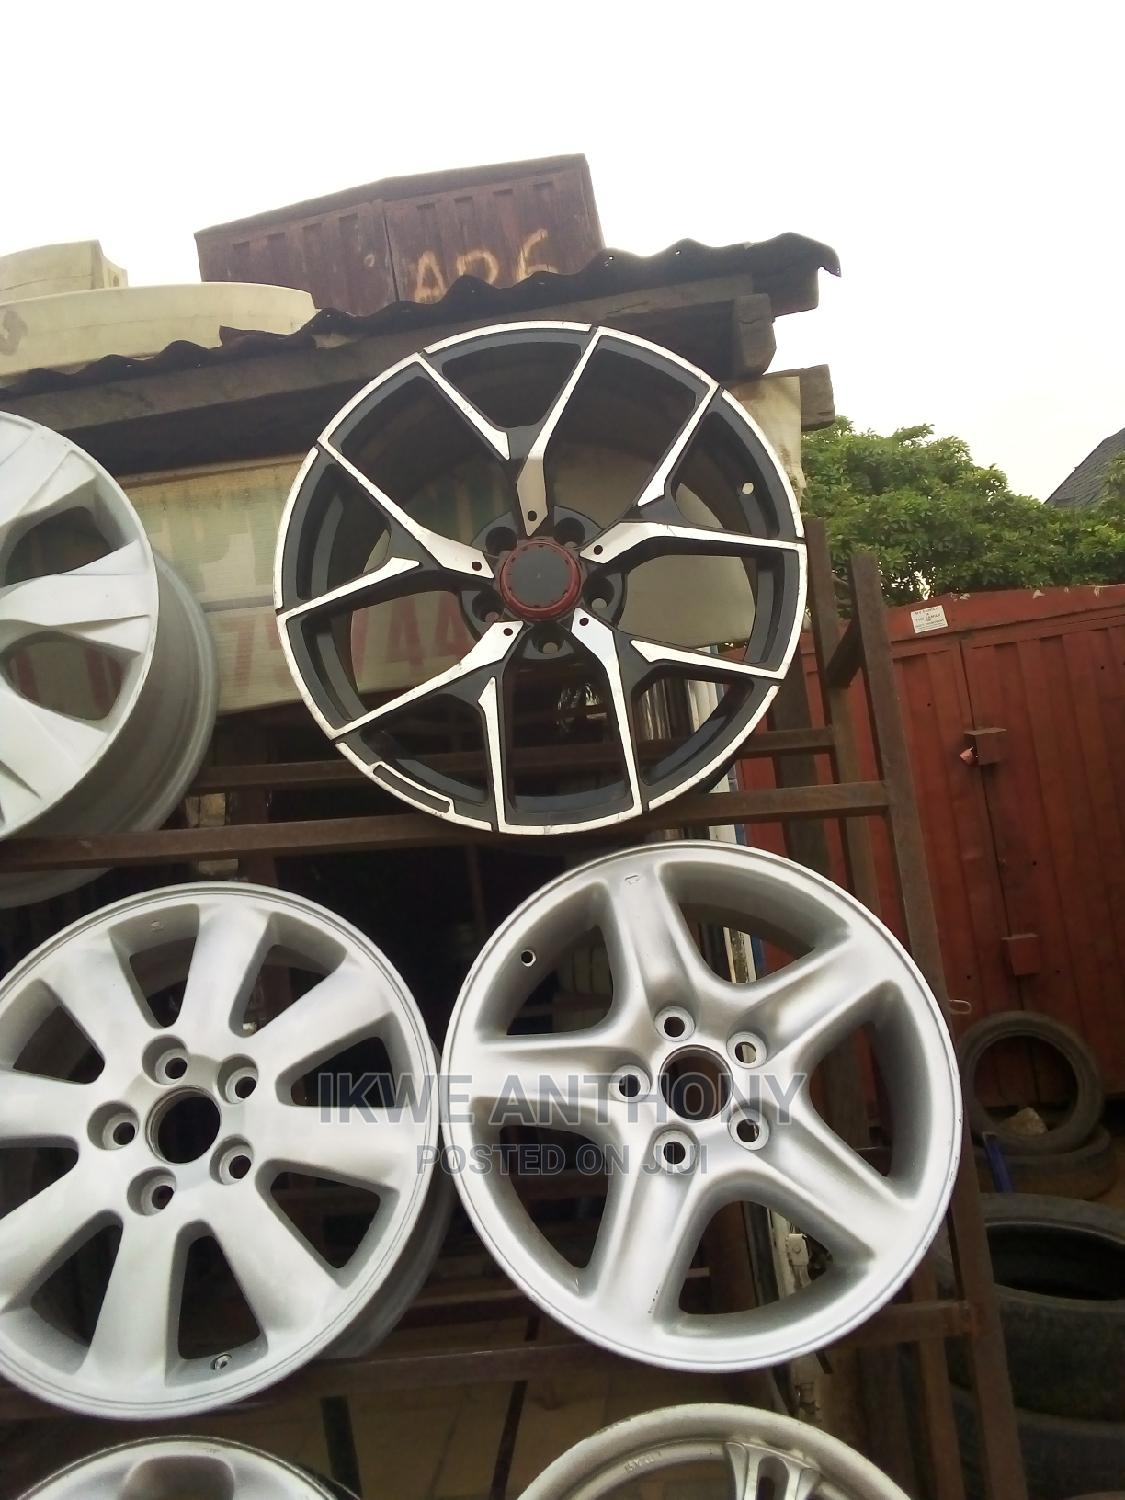 Latest Design of Rims and Tires